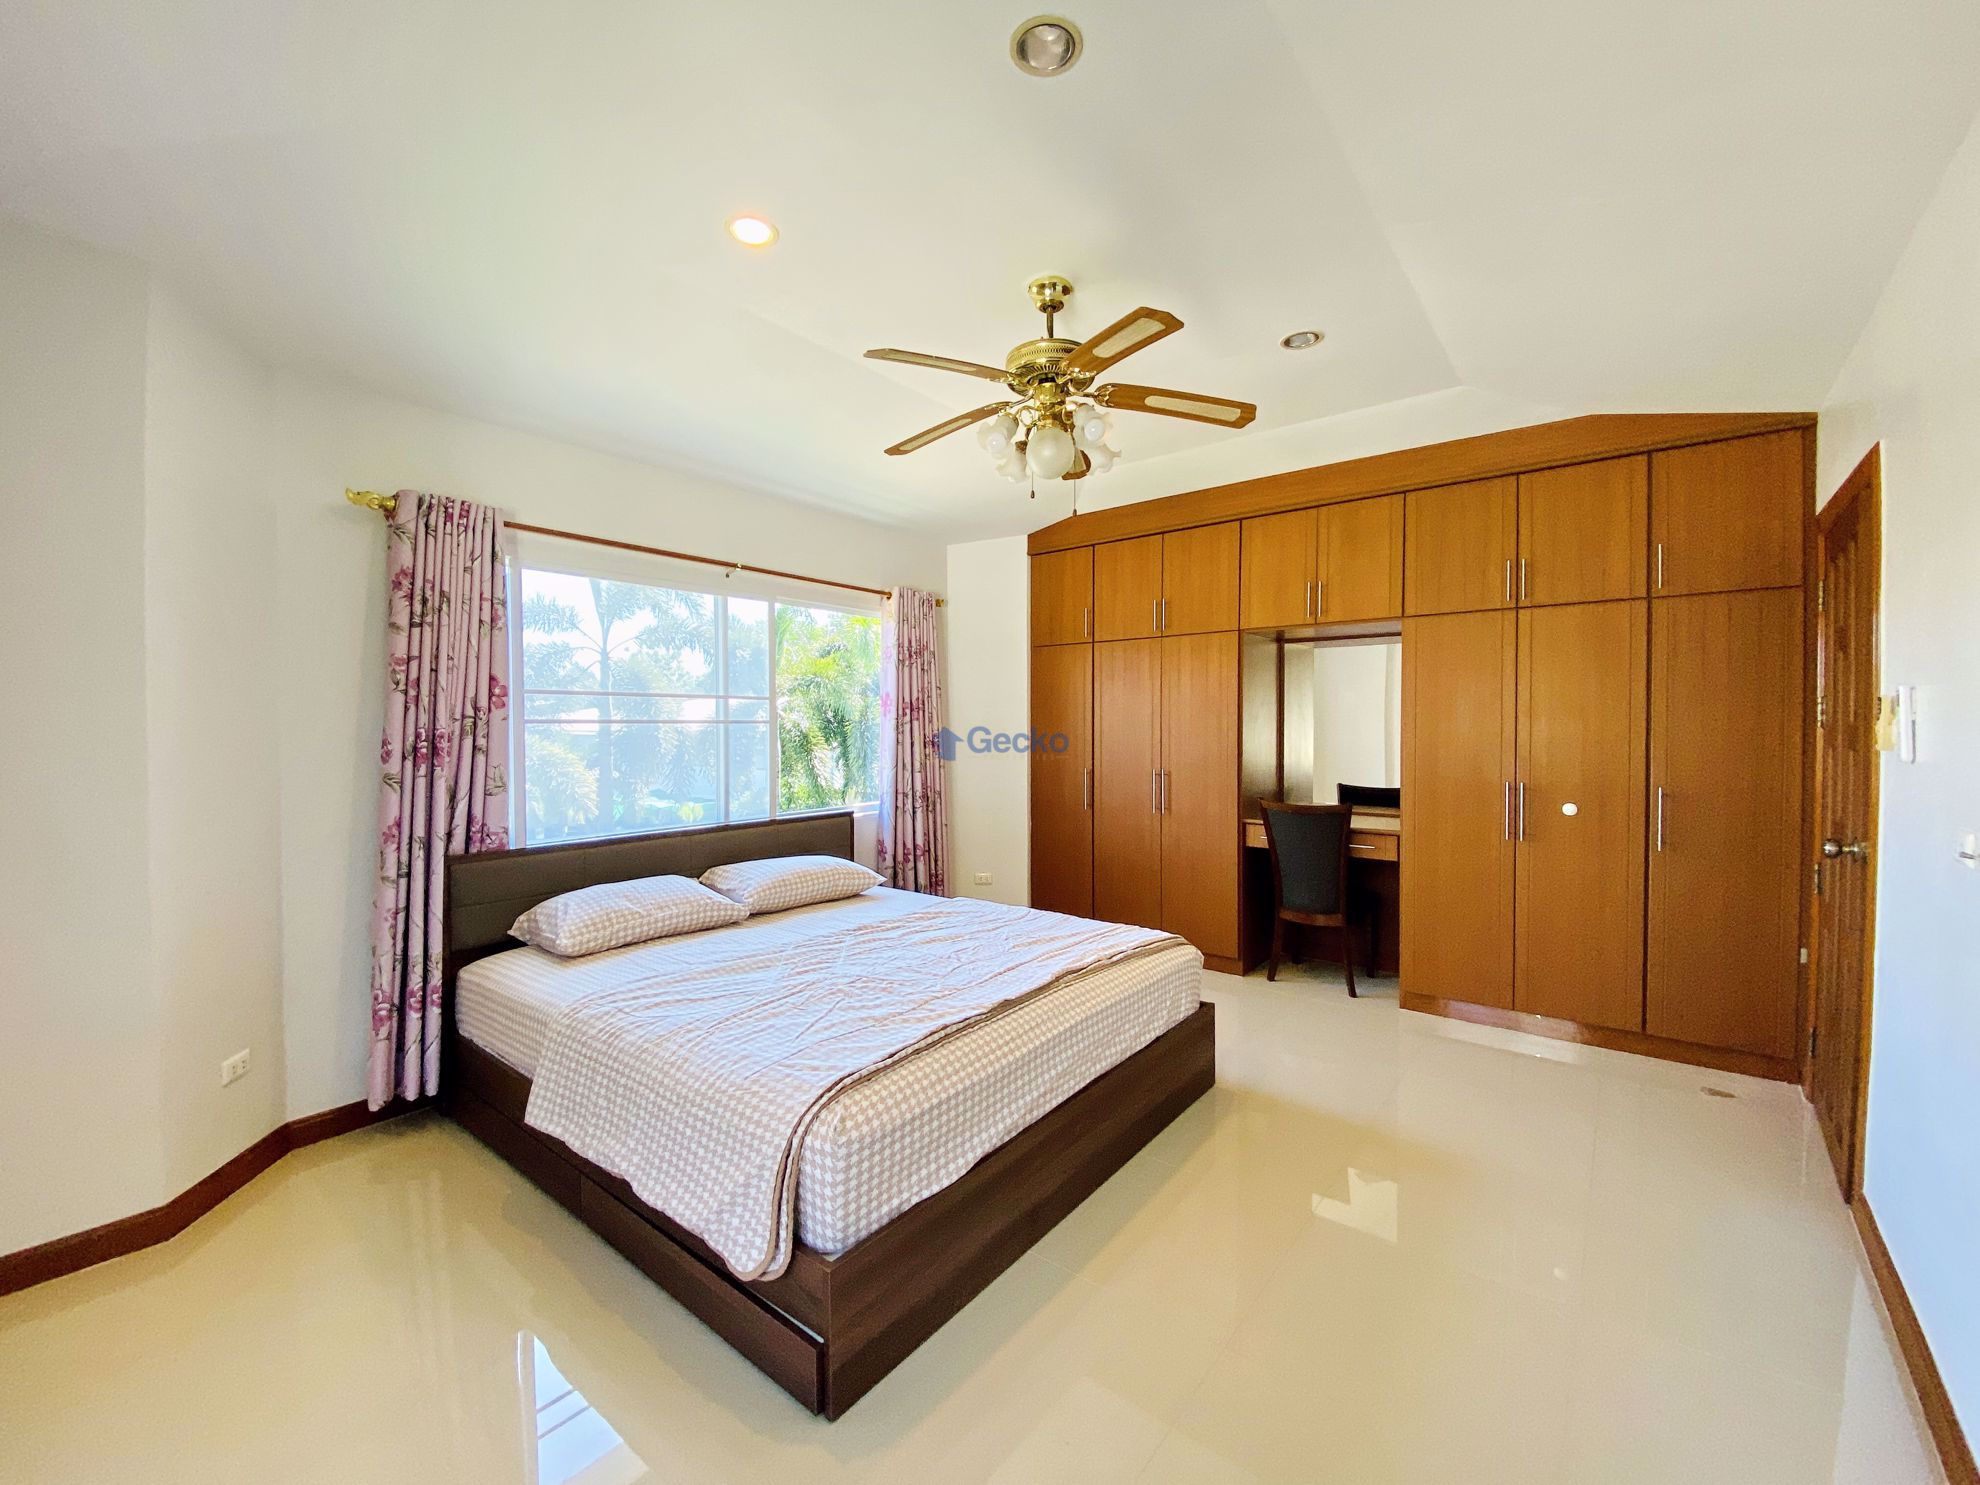 Picture of 3 Bedrooms bed in House in Green Field Villa 2 in East Pattaya H009296